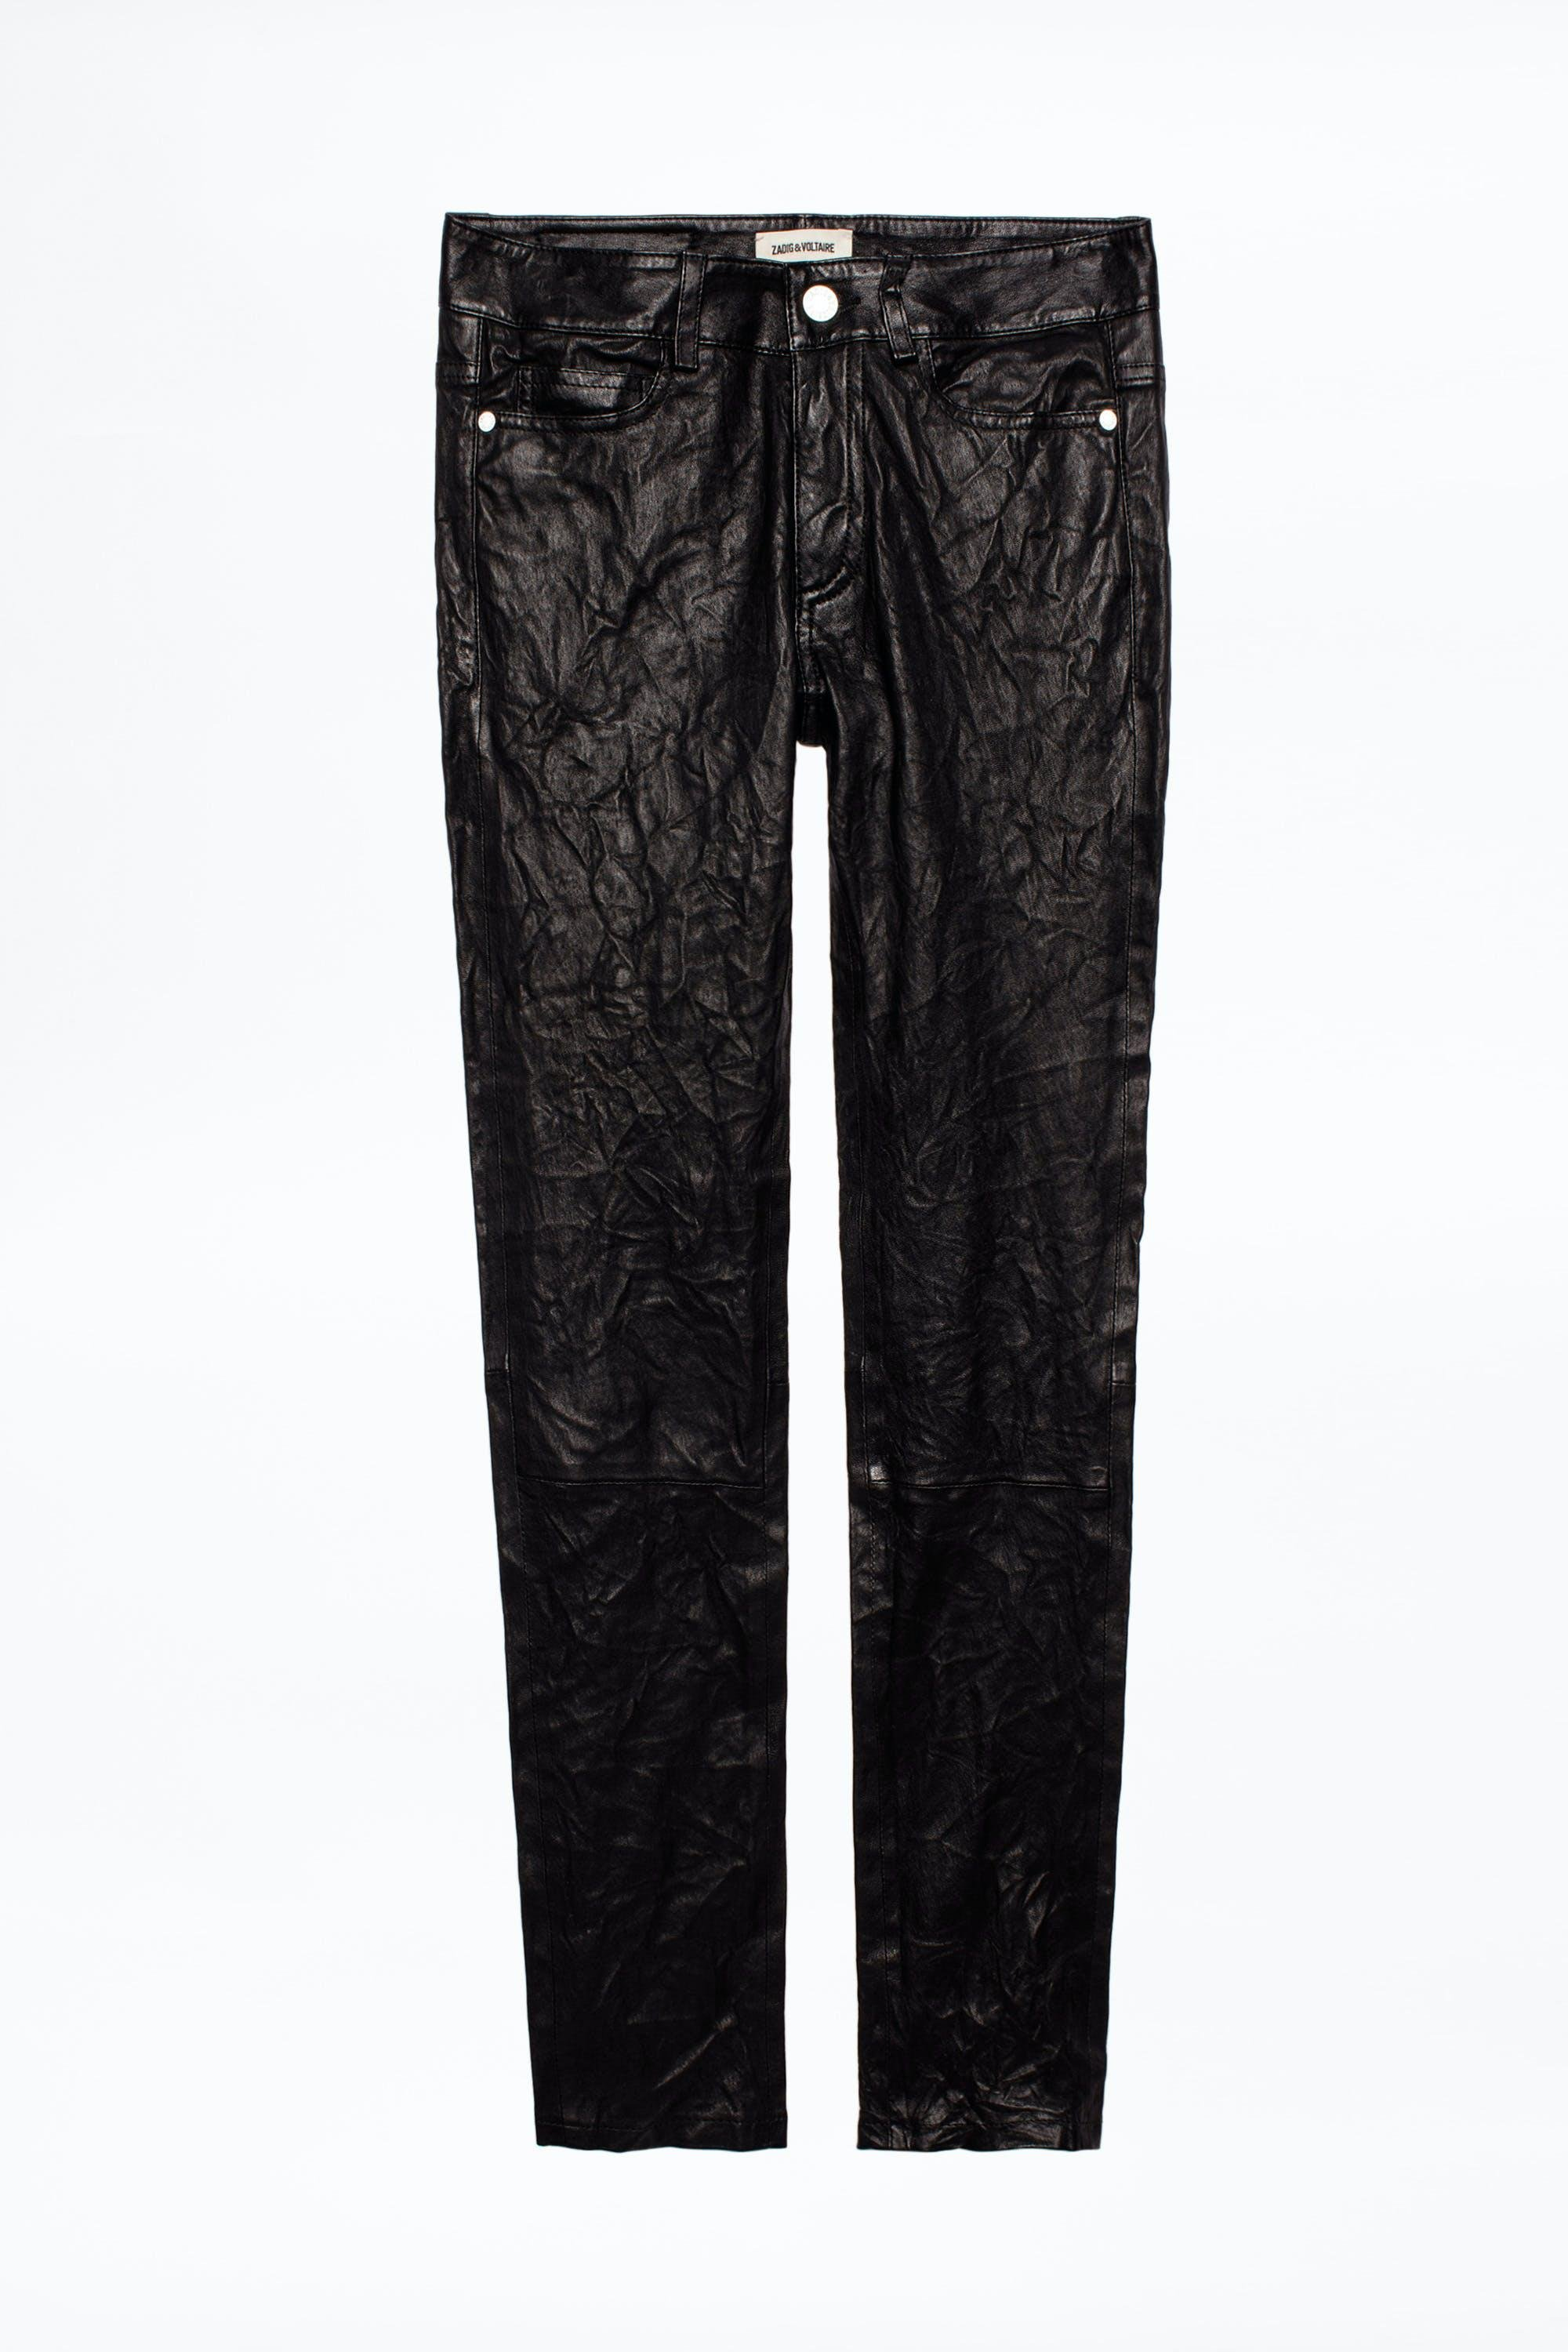 Phlame Crinkle Leather Pants 5